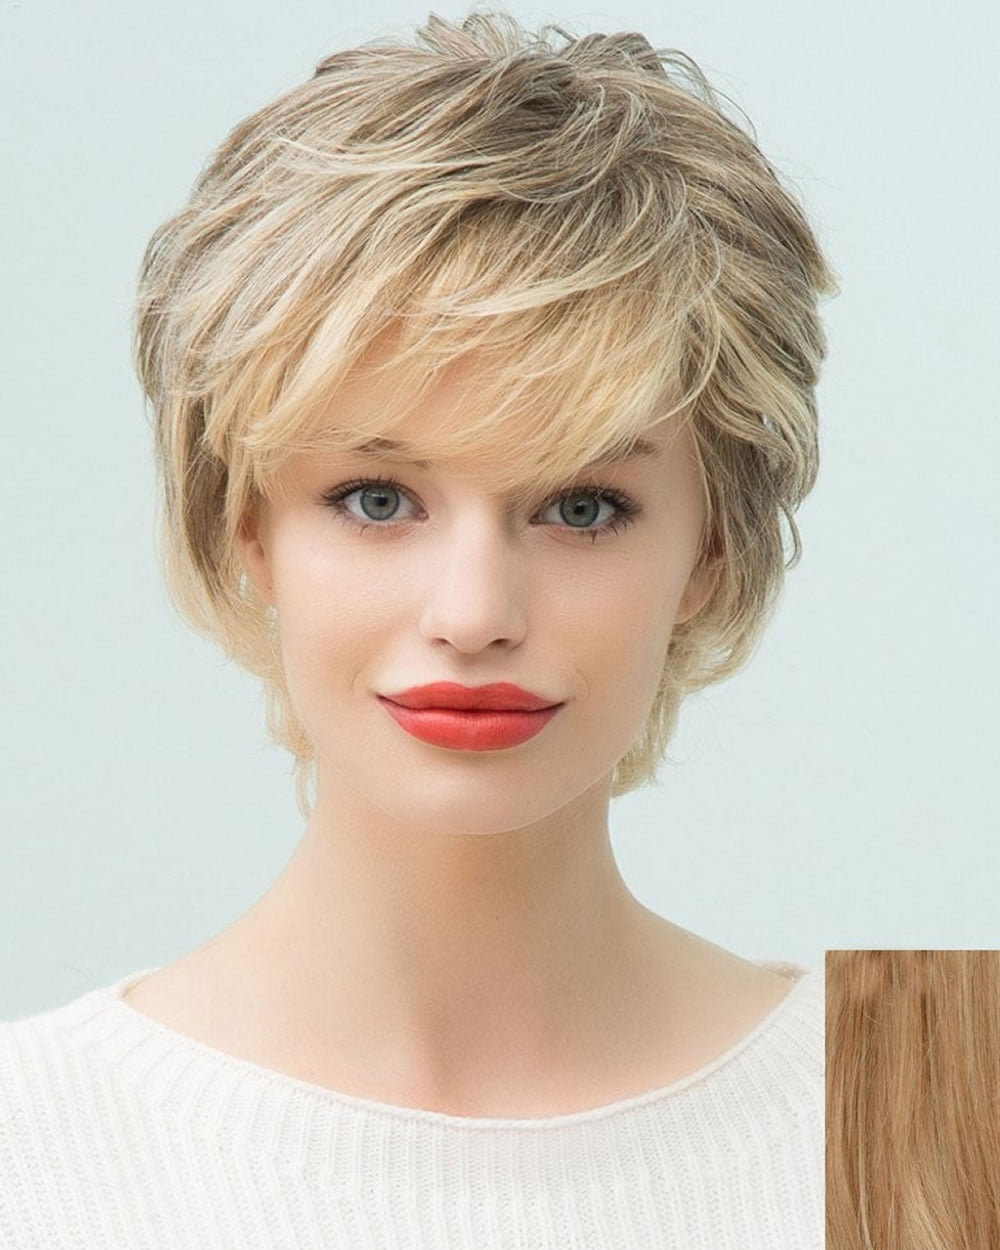 25 Top Very Short Hair Ideas Short Bob Pixie Hairstyles